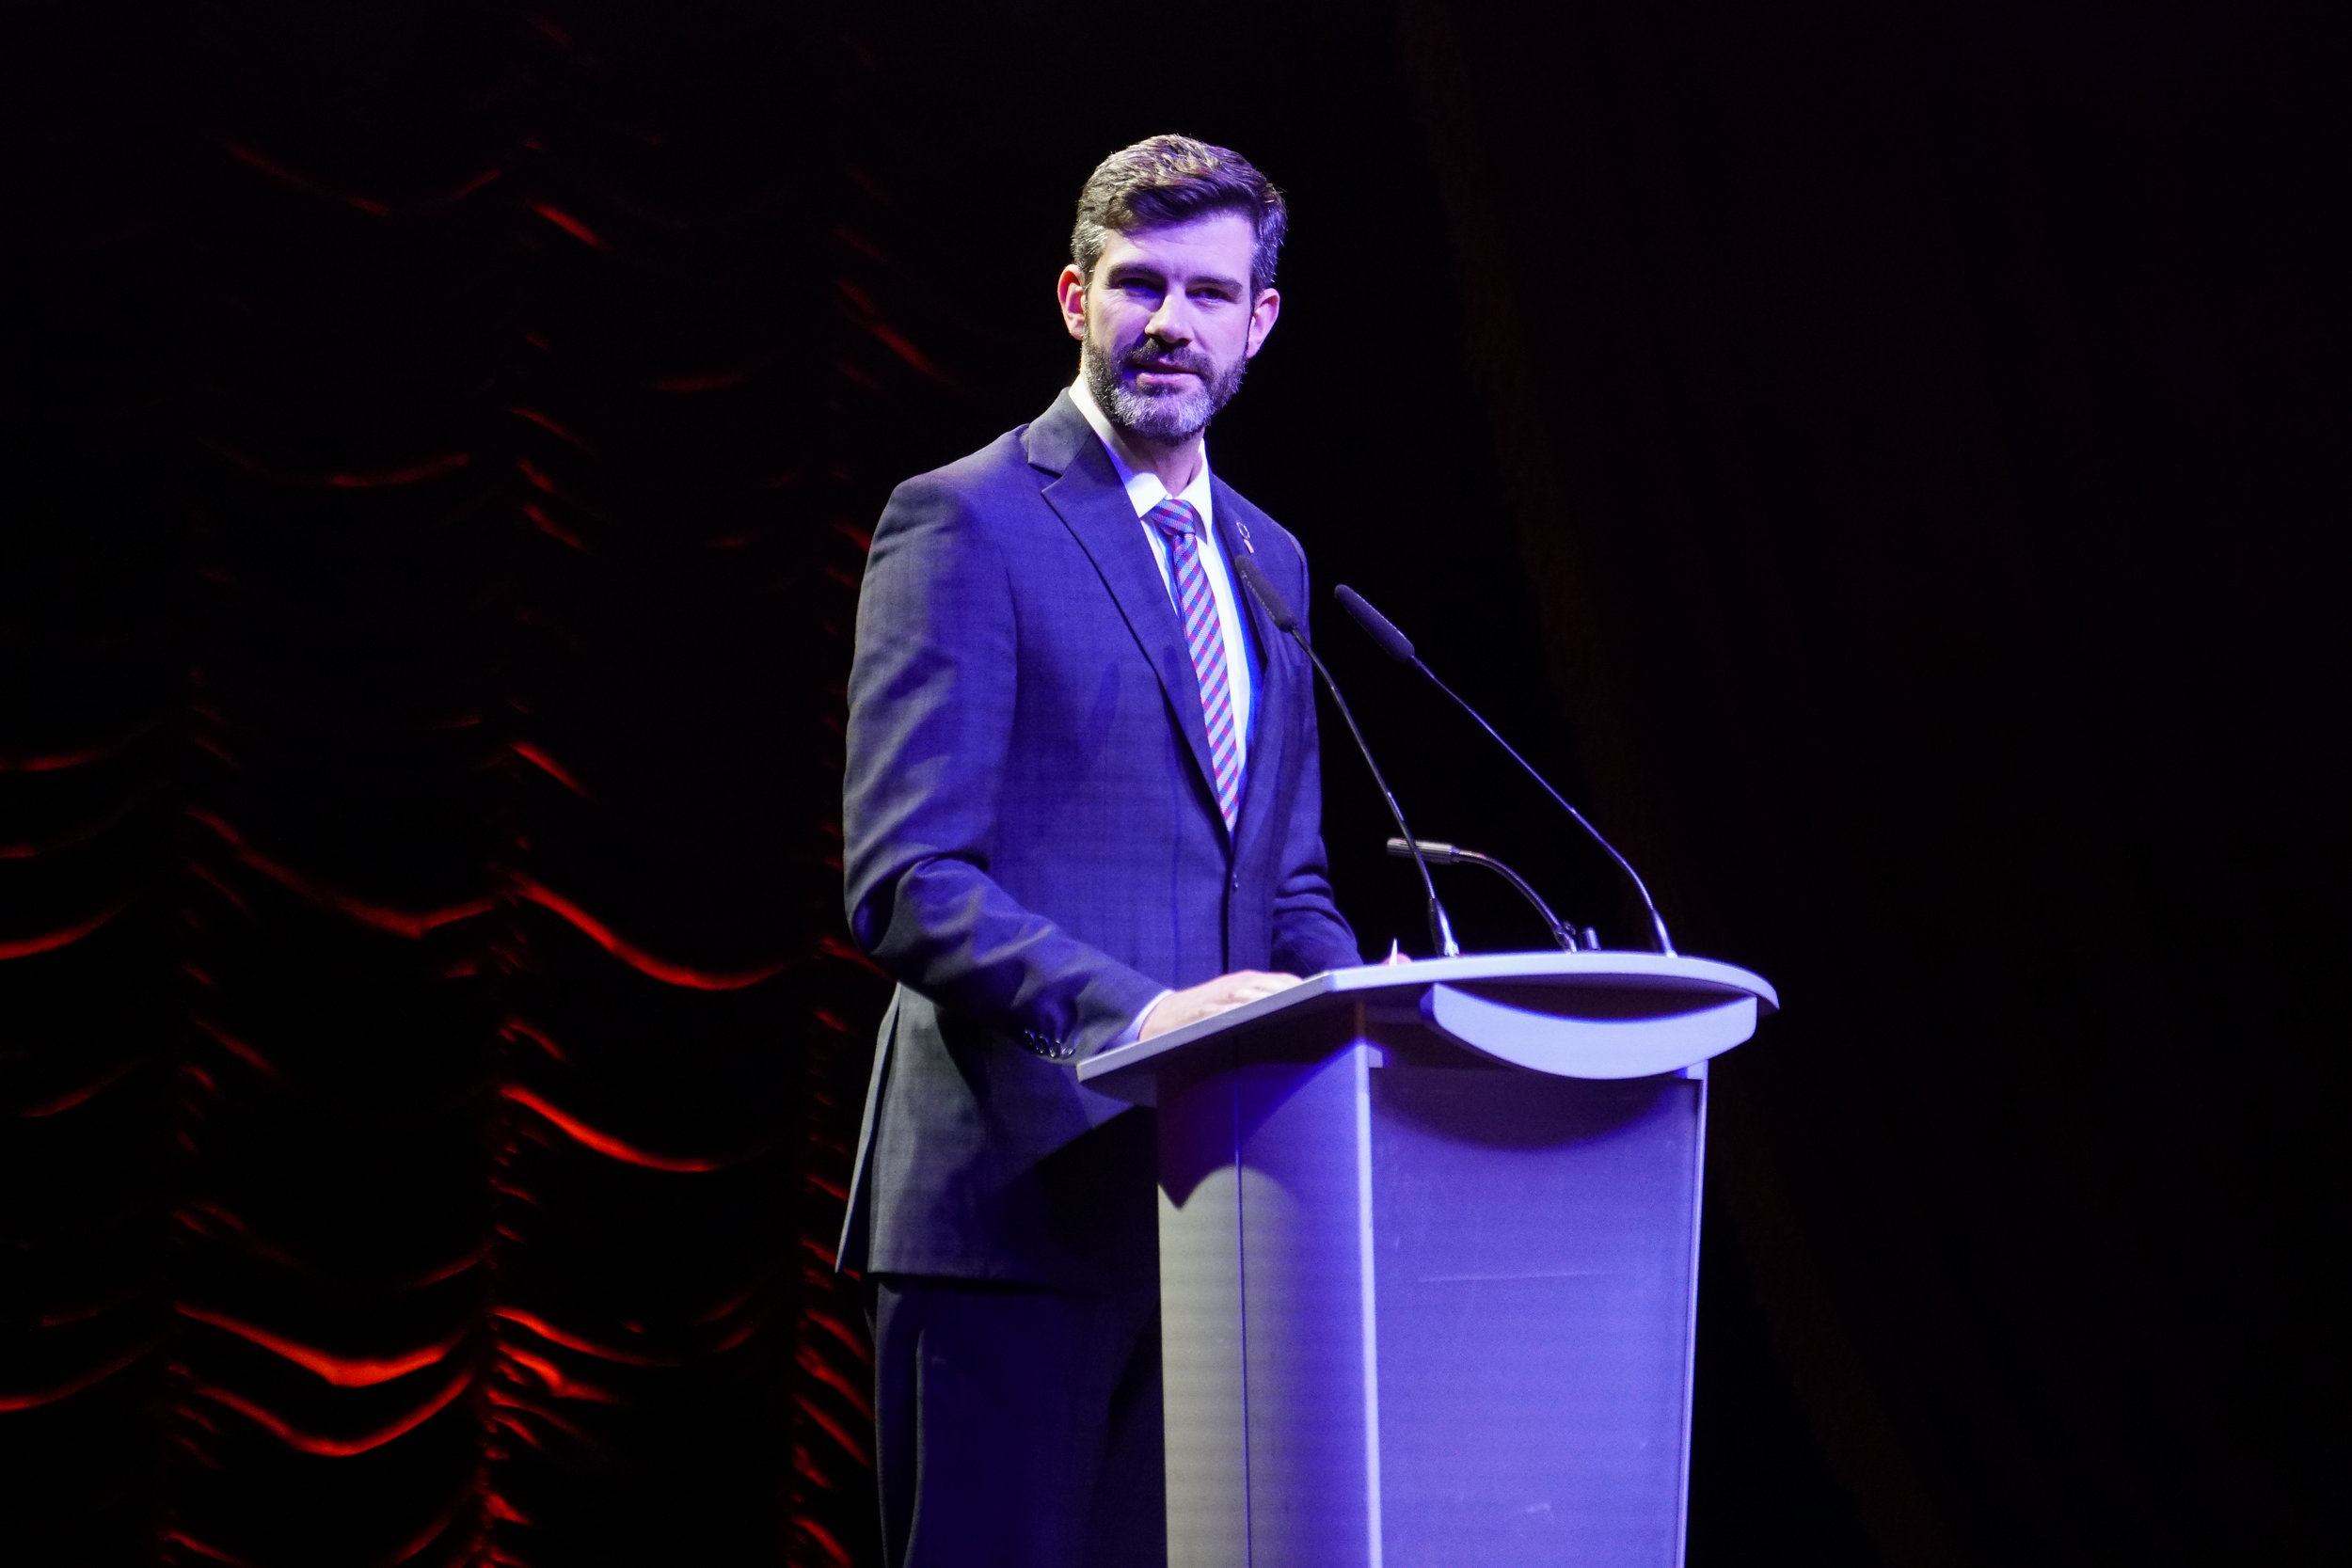 Mayor Don Iveson shares the importance of opera in our community